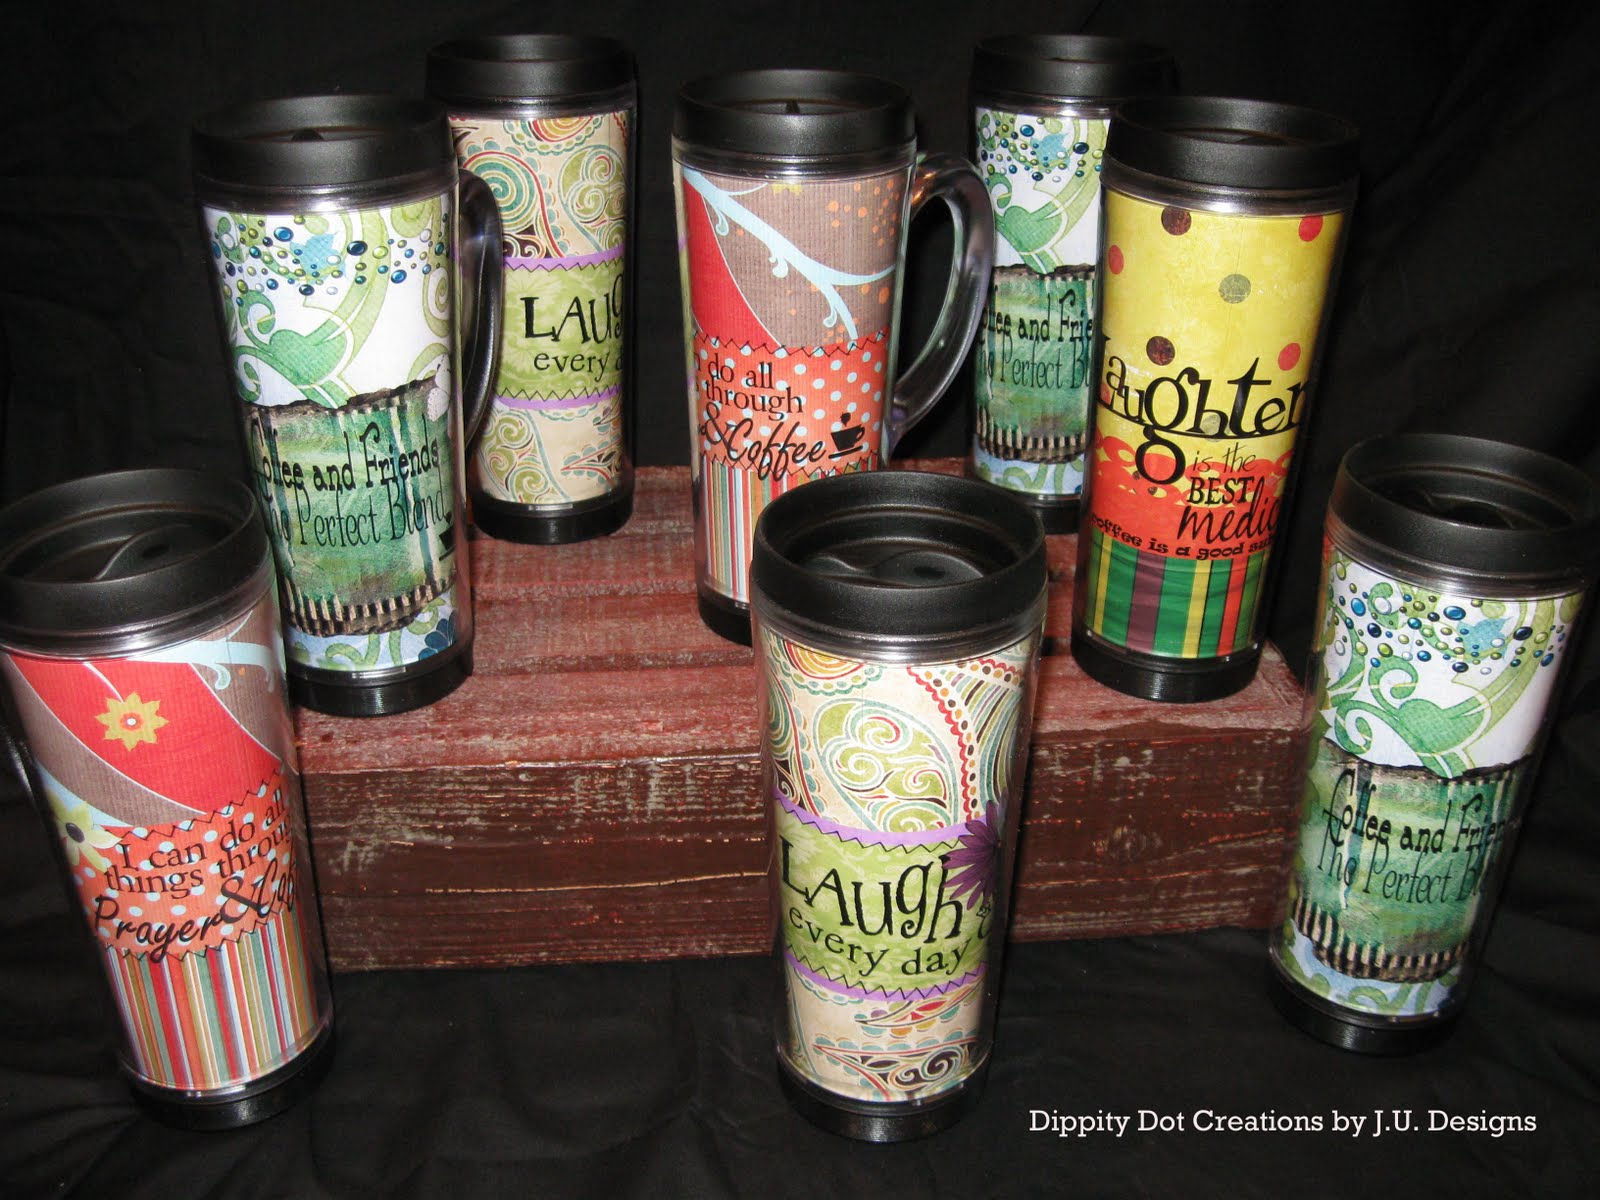 ... and your hot drinks hot for more information visit digitally designed